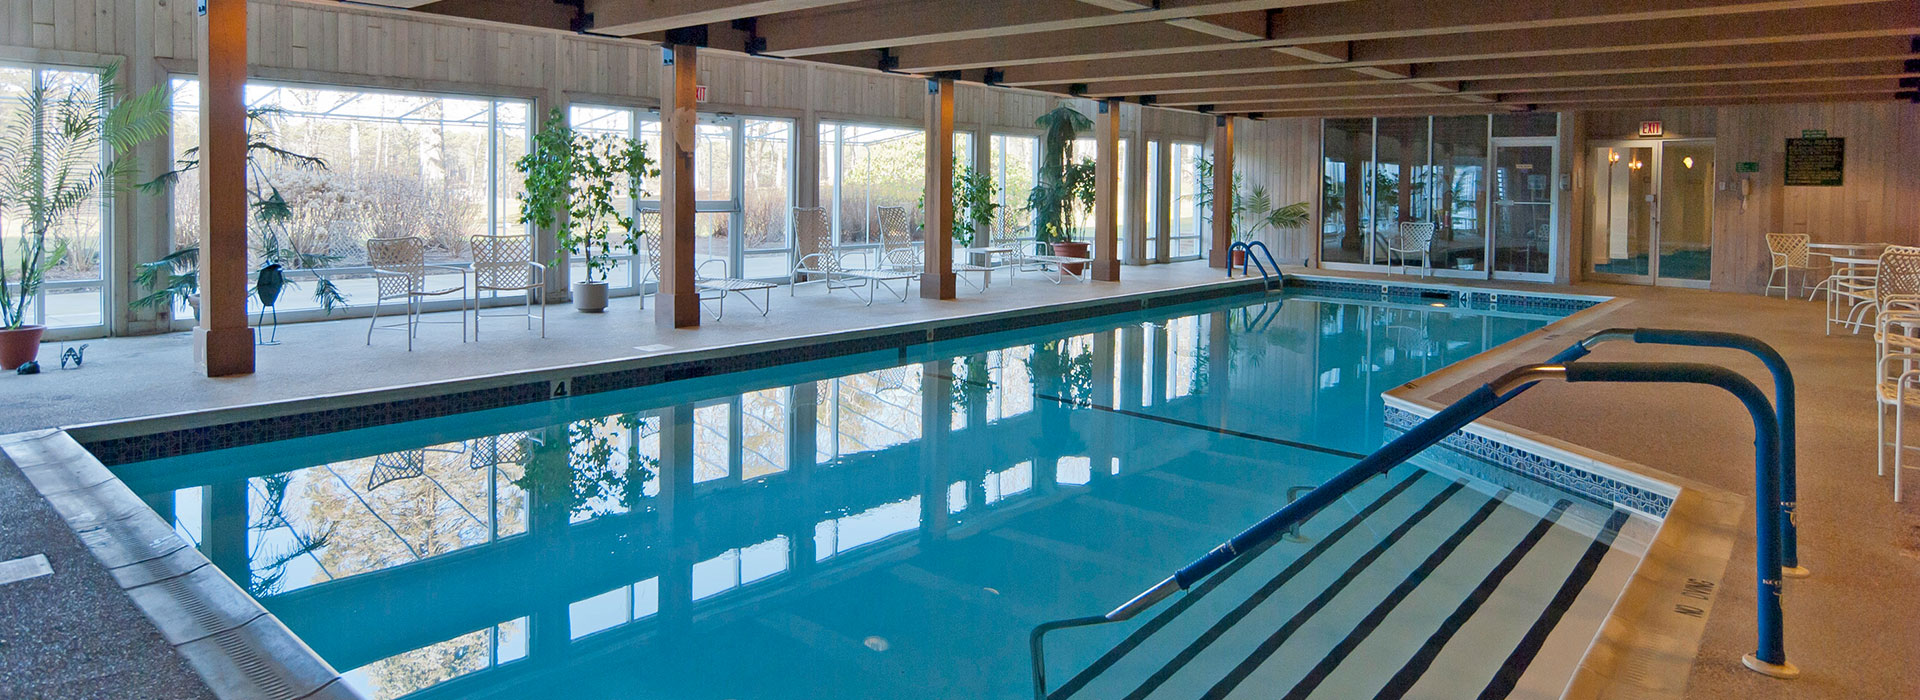 Thirwood Place indoor heated pool